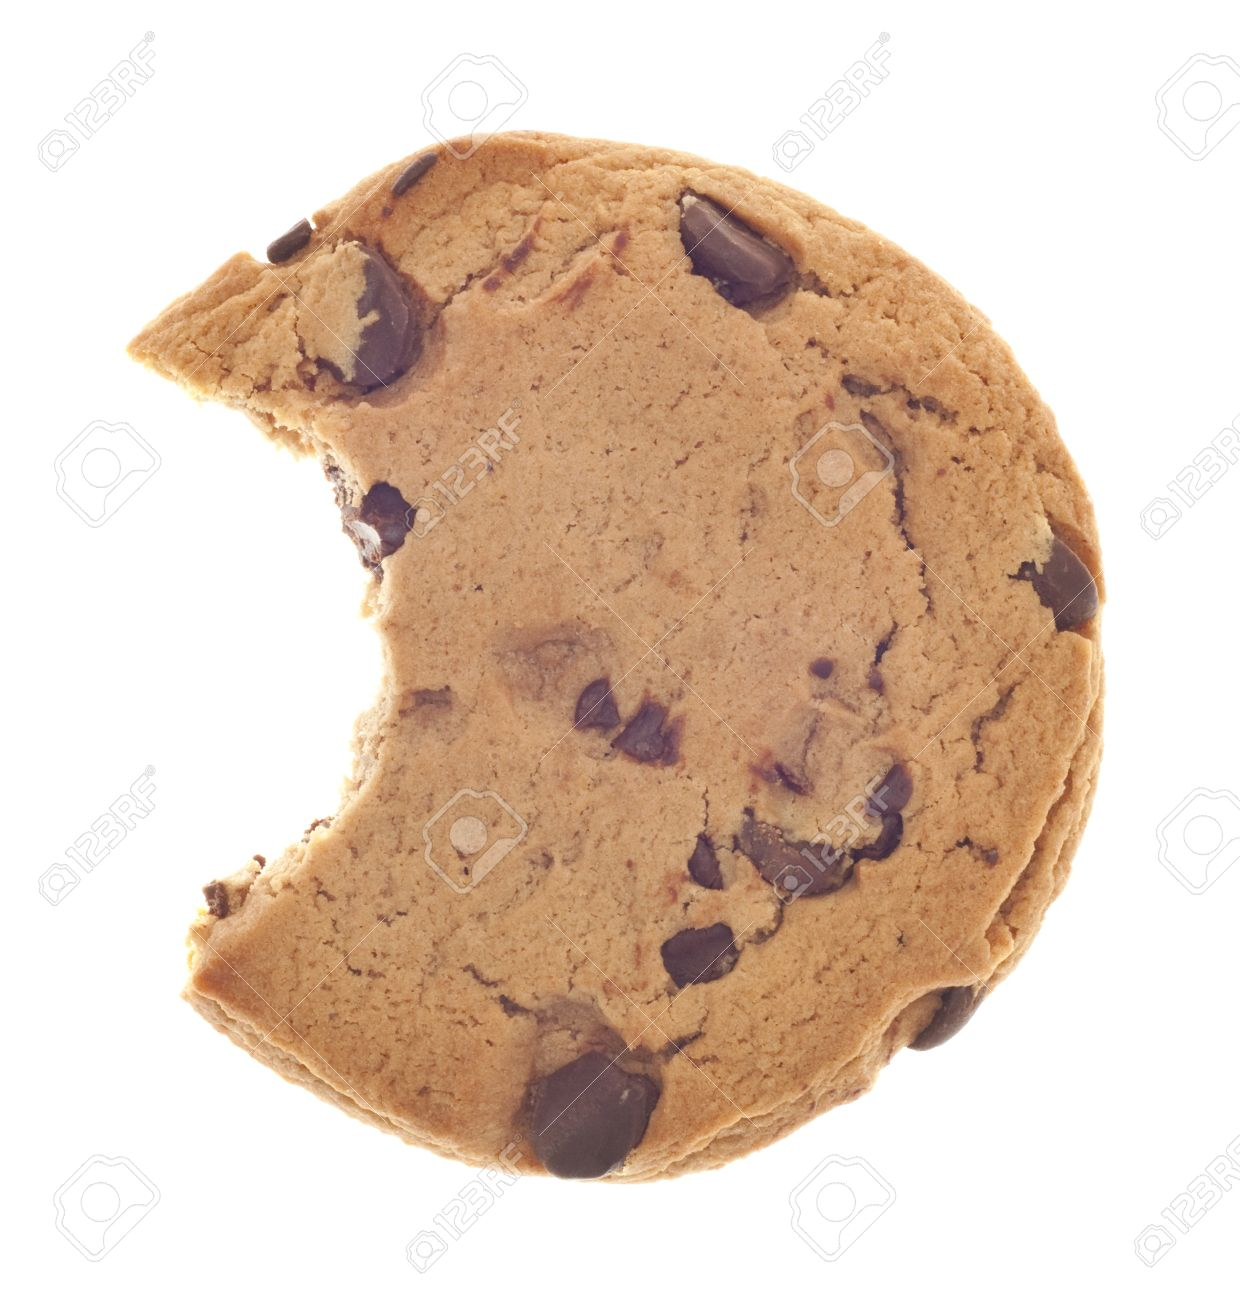 Chocolate Chip Cookie Snack with Bite Taken Isolated on White Stock Photo - 9037477